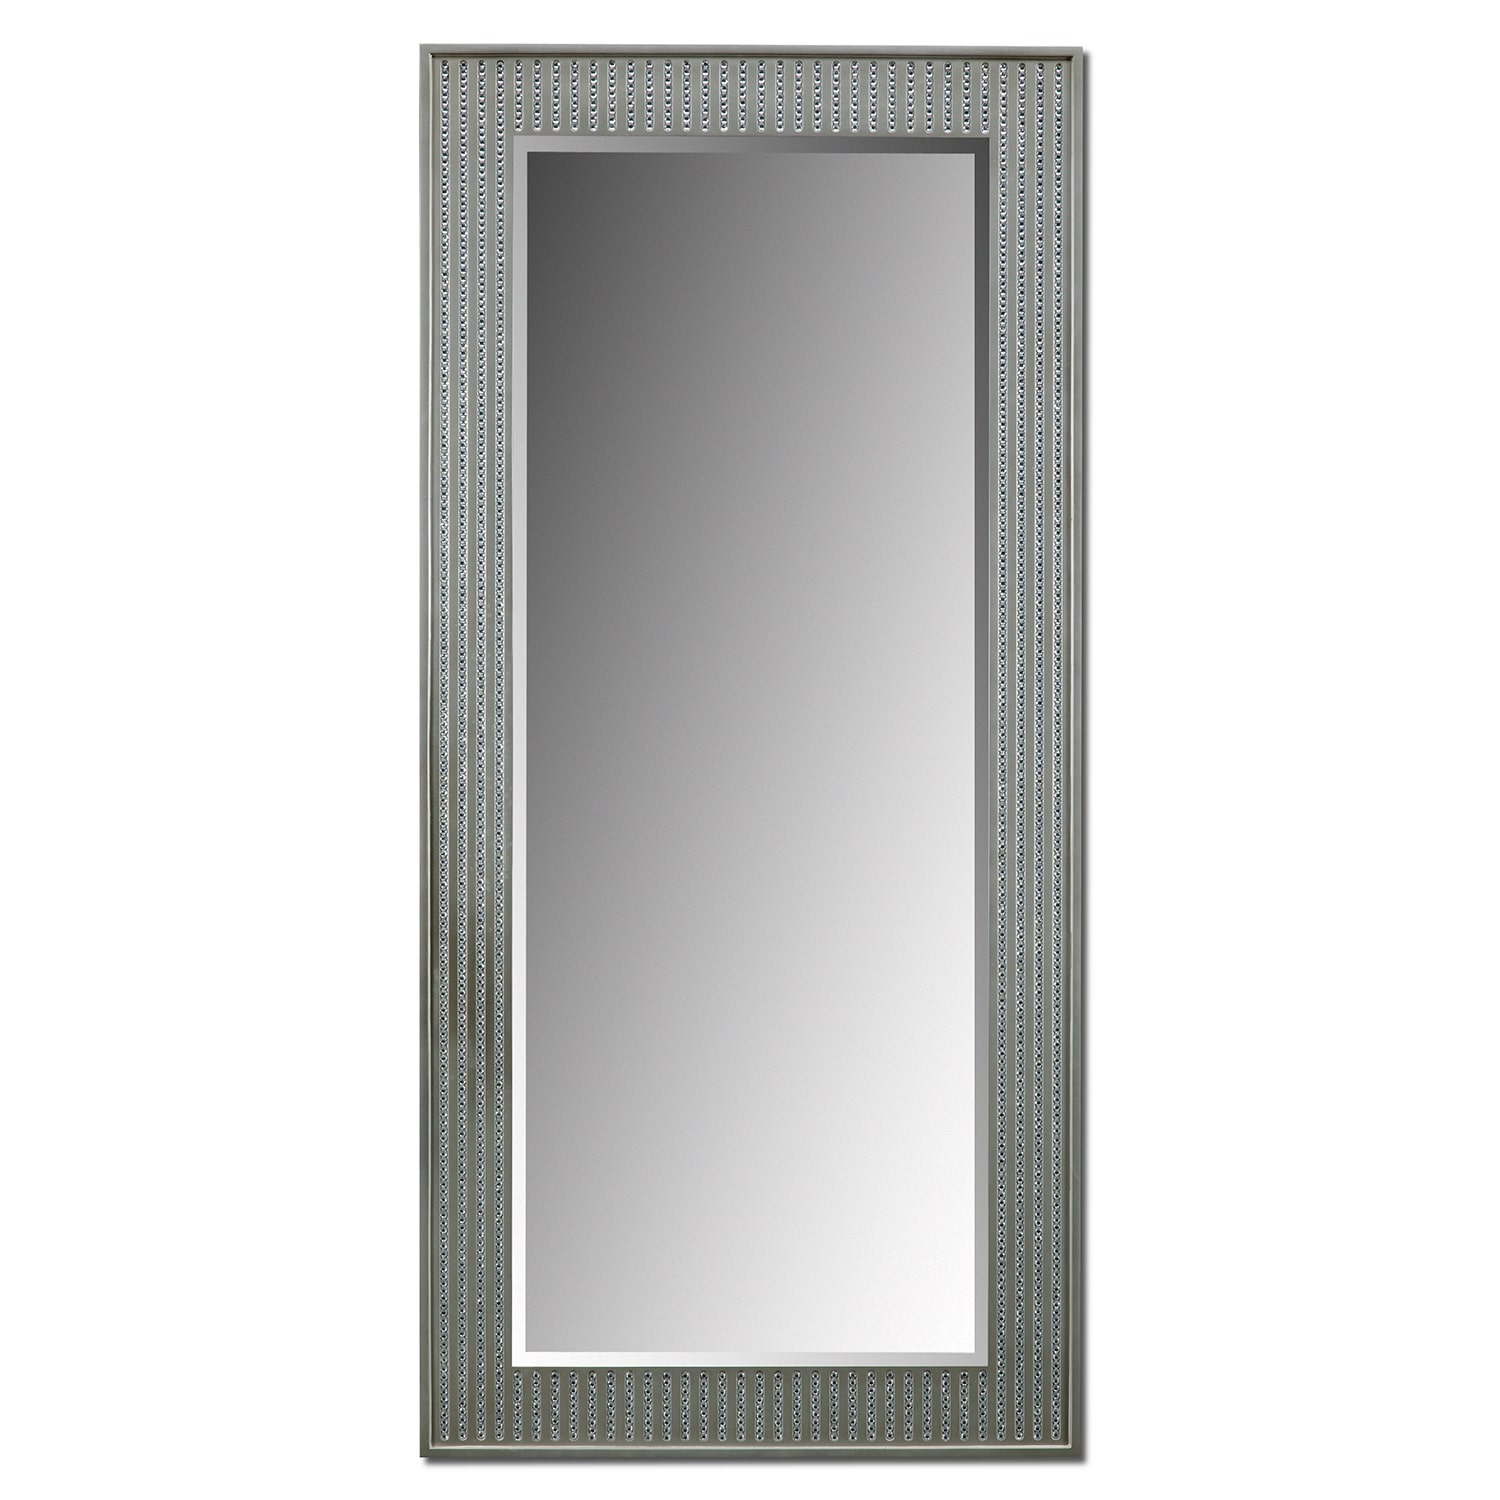 Home Accessories - Bling Glam Floor Mirror - Silver